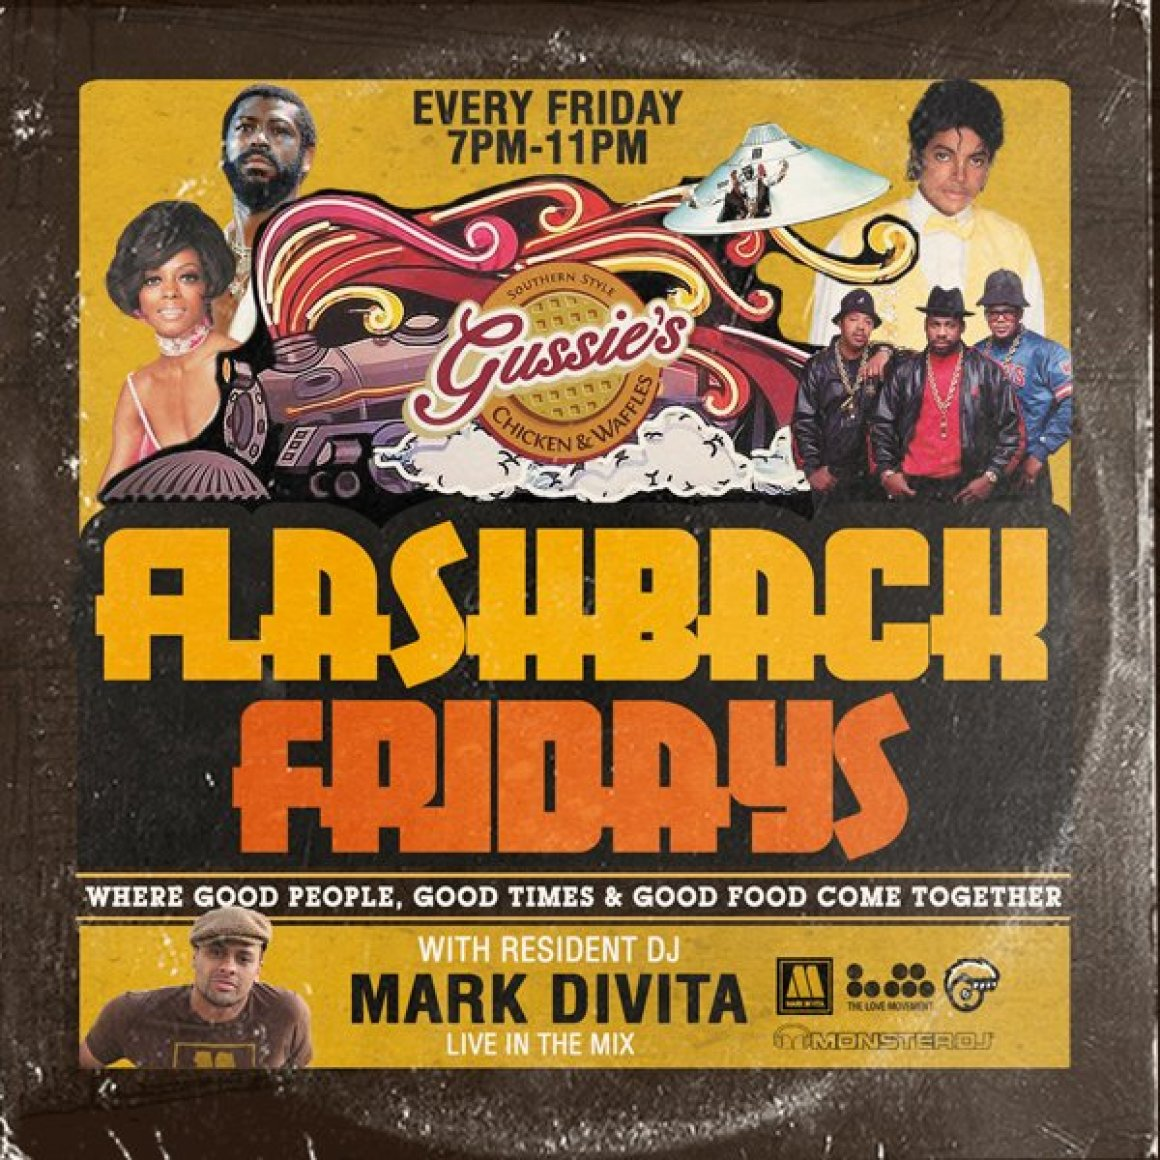 divita-gussies-flashback-fridays-mixtape